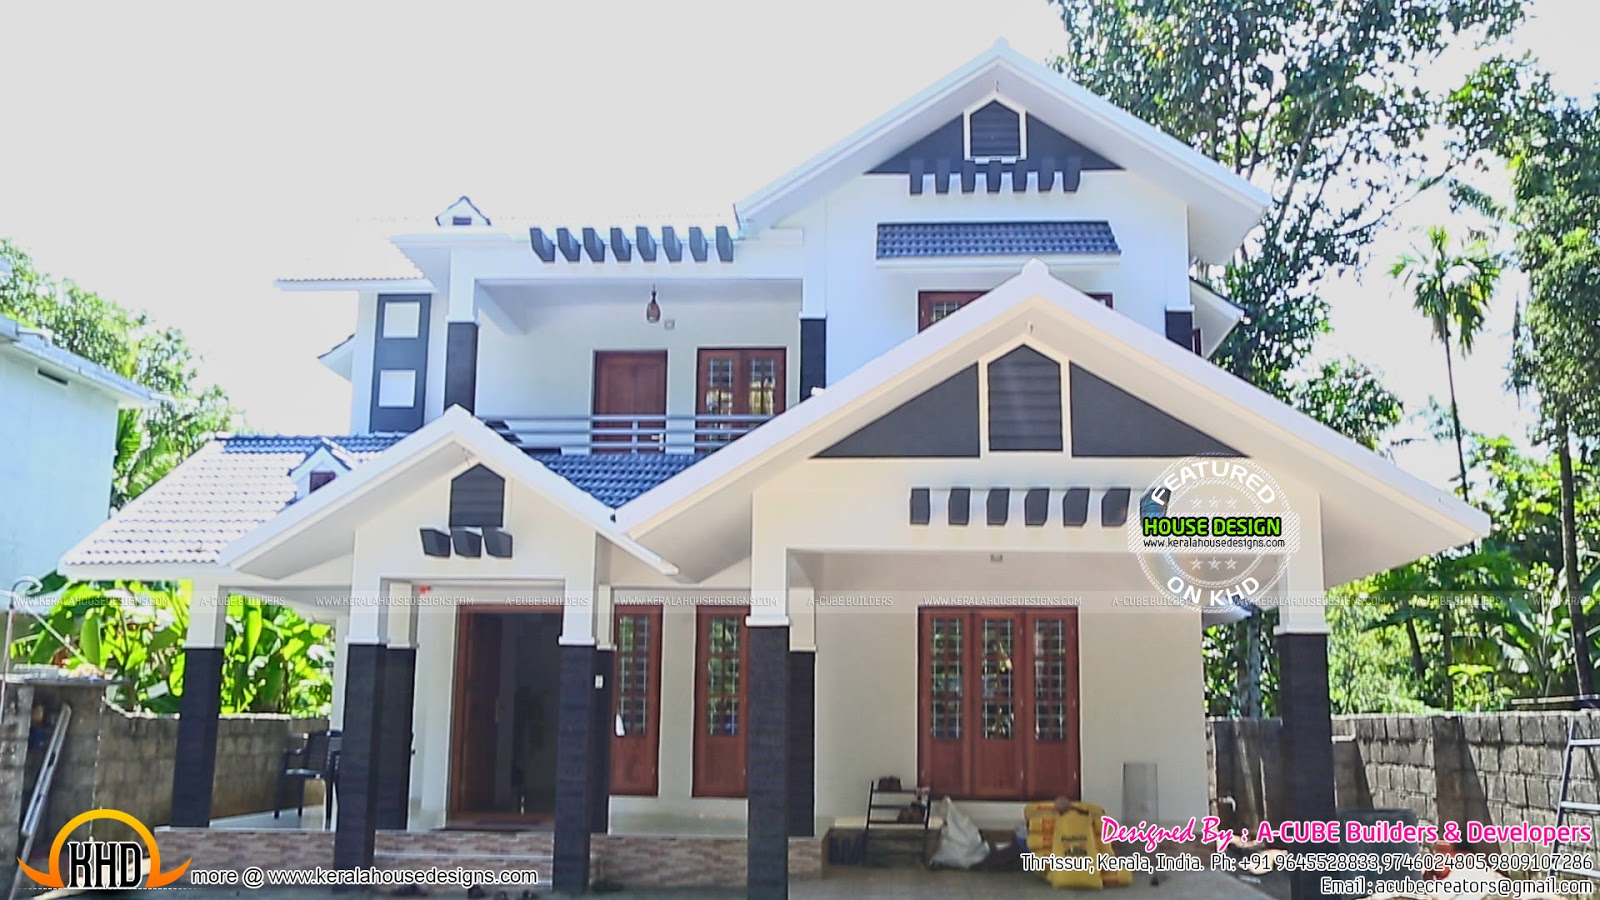 New house plans for 2016 starts here kerala home design for Beautiful houses 2016